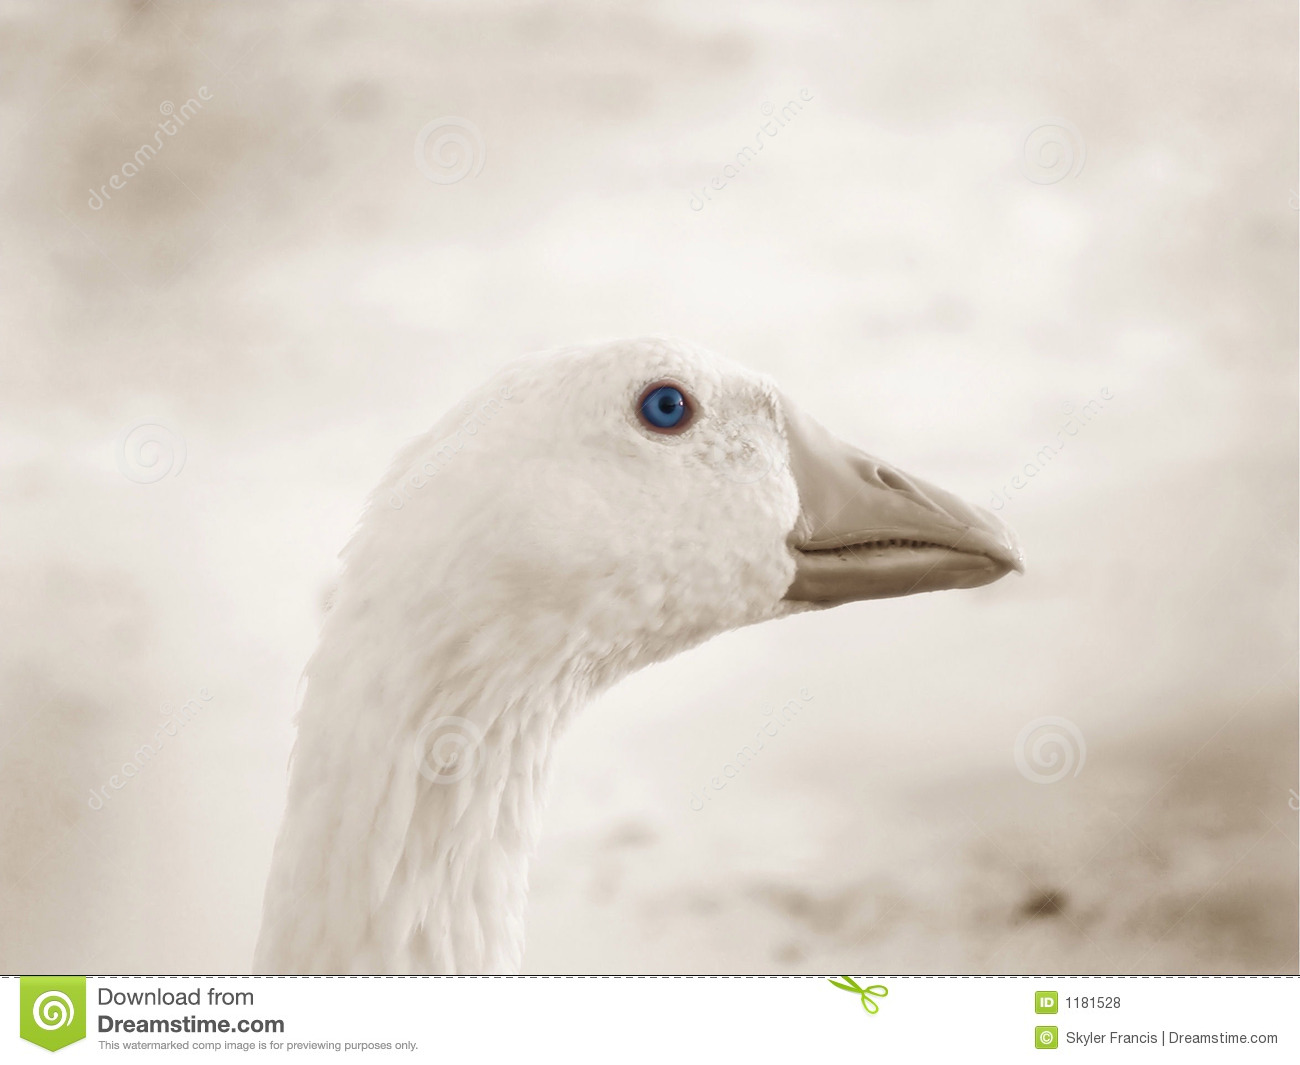 Goose with blue eye